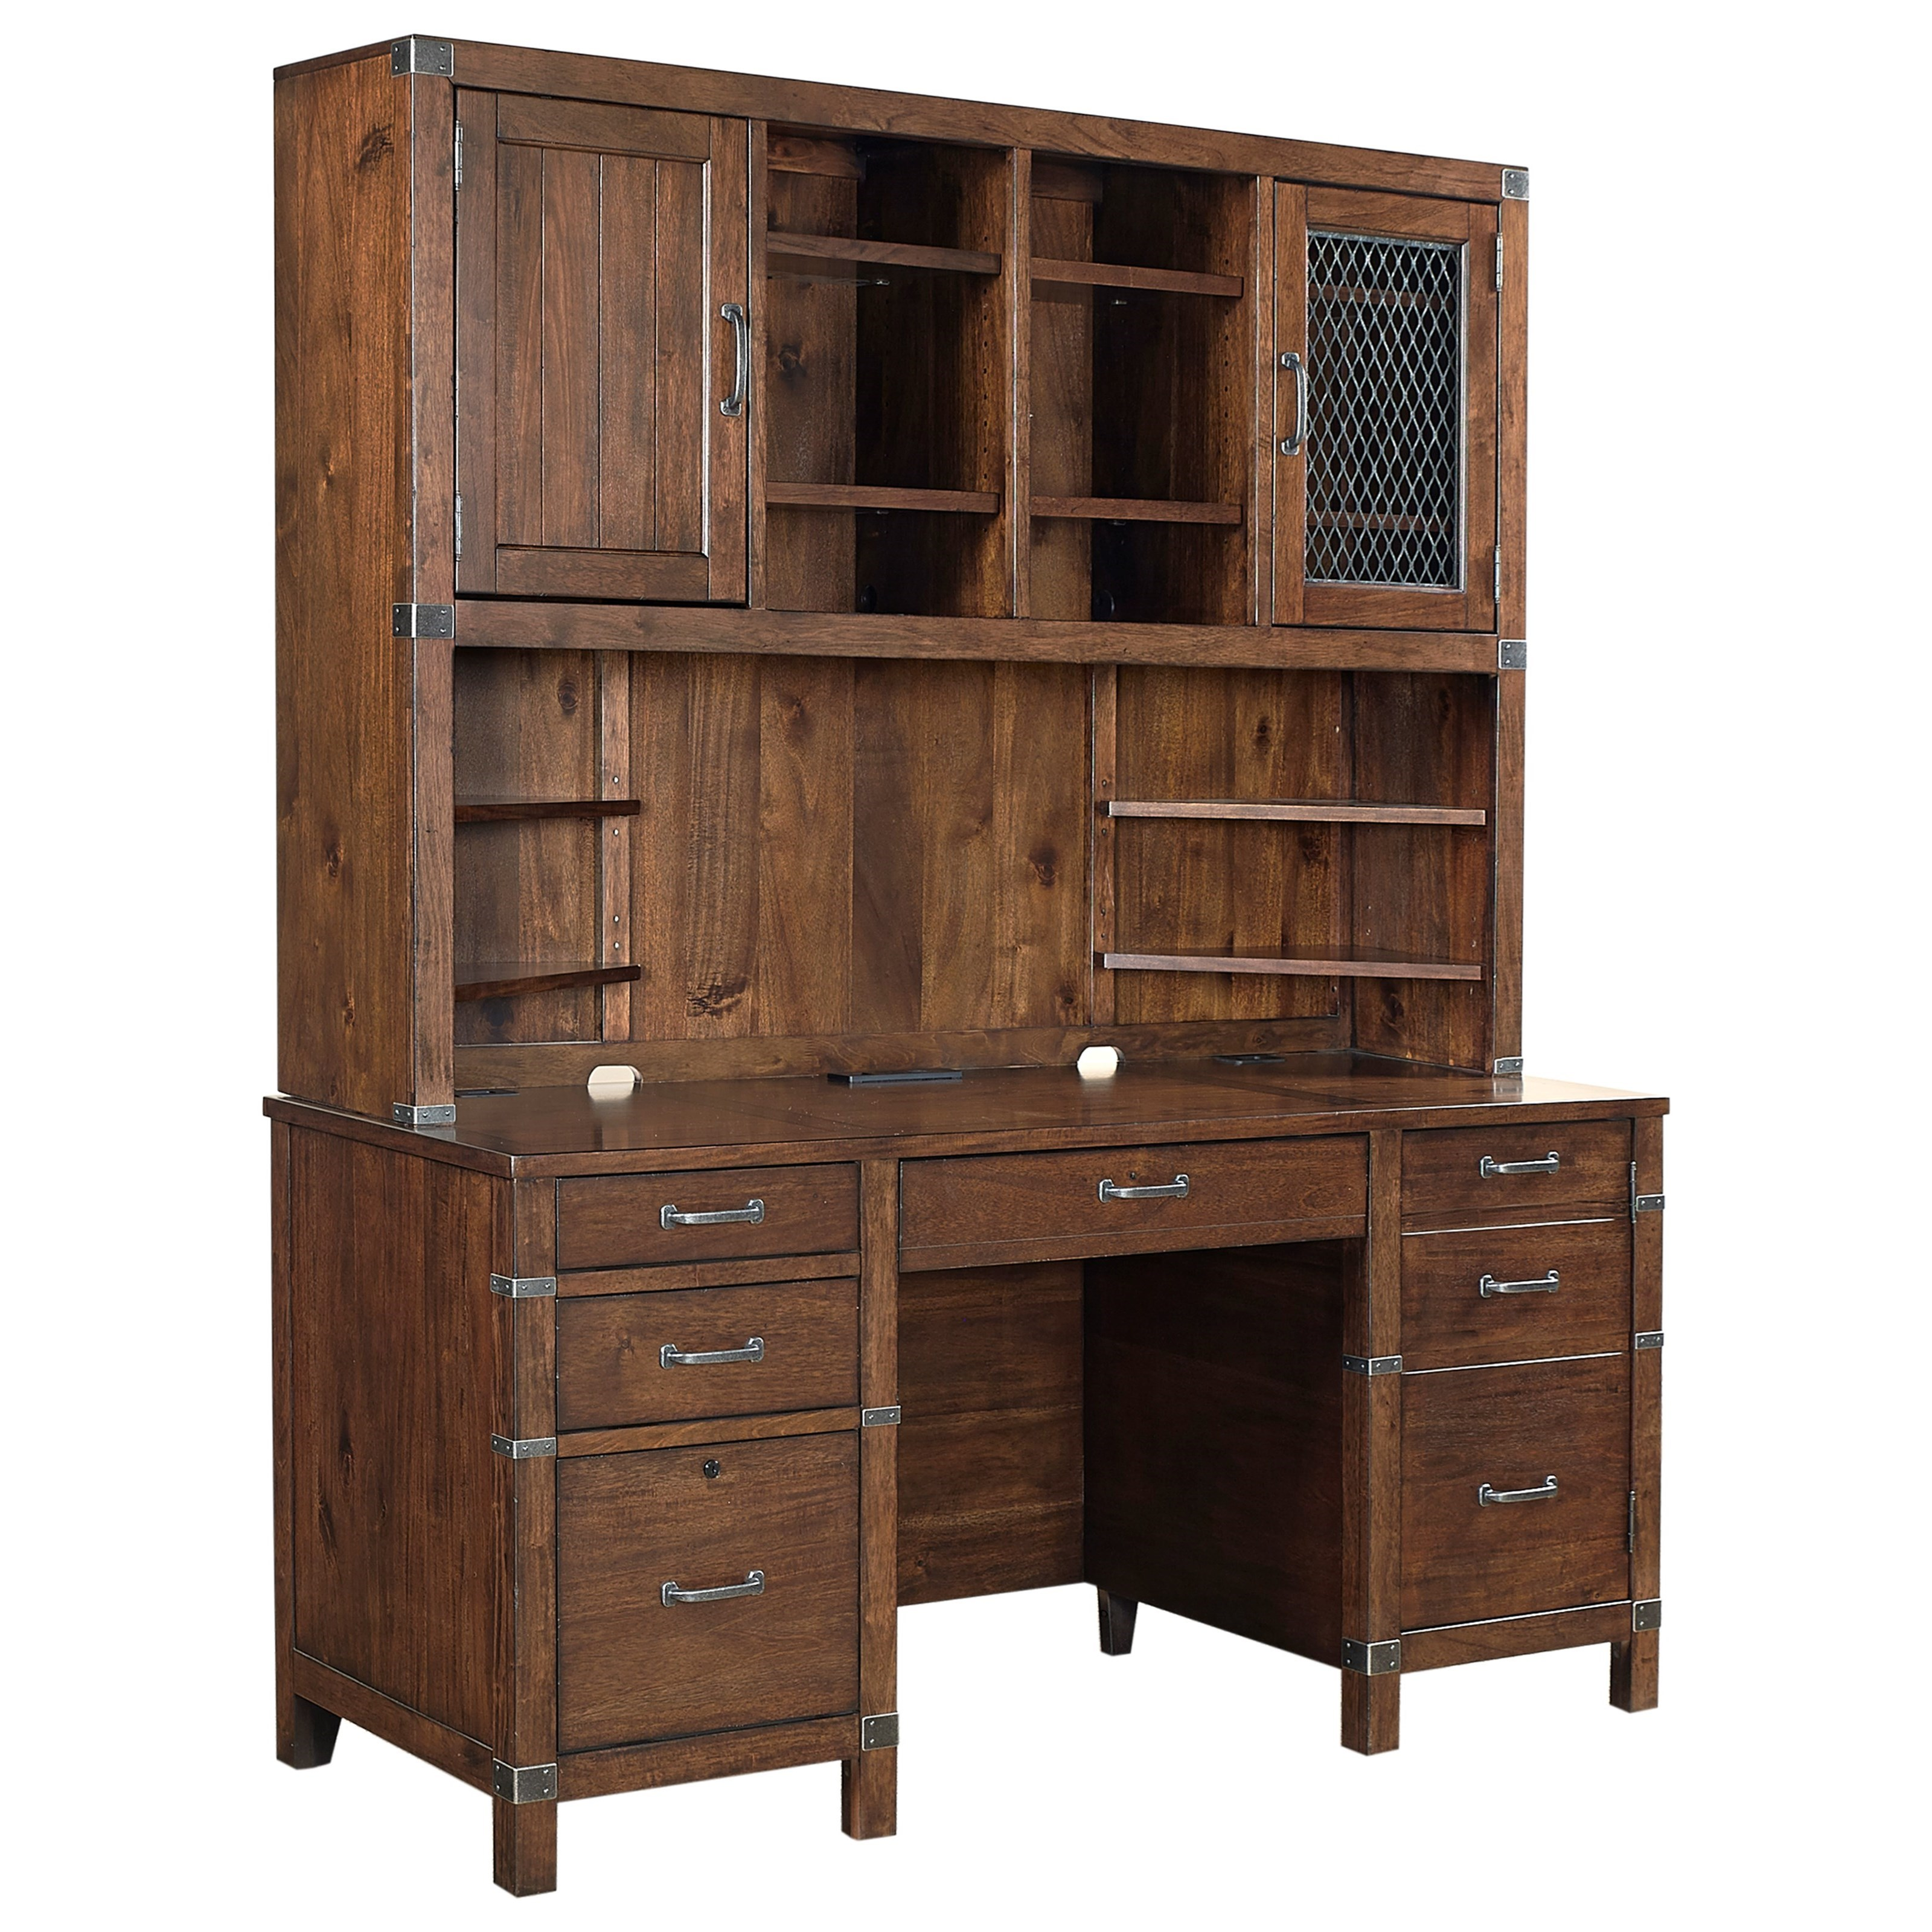 Aspenhome Canfield Credenza And Hutch With Usb Port And Outlets Belfort Furniture Desk